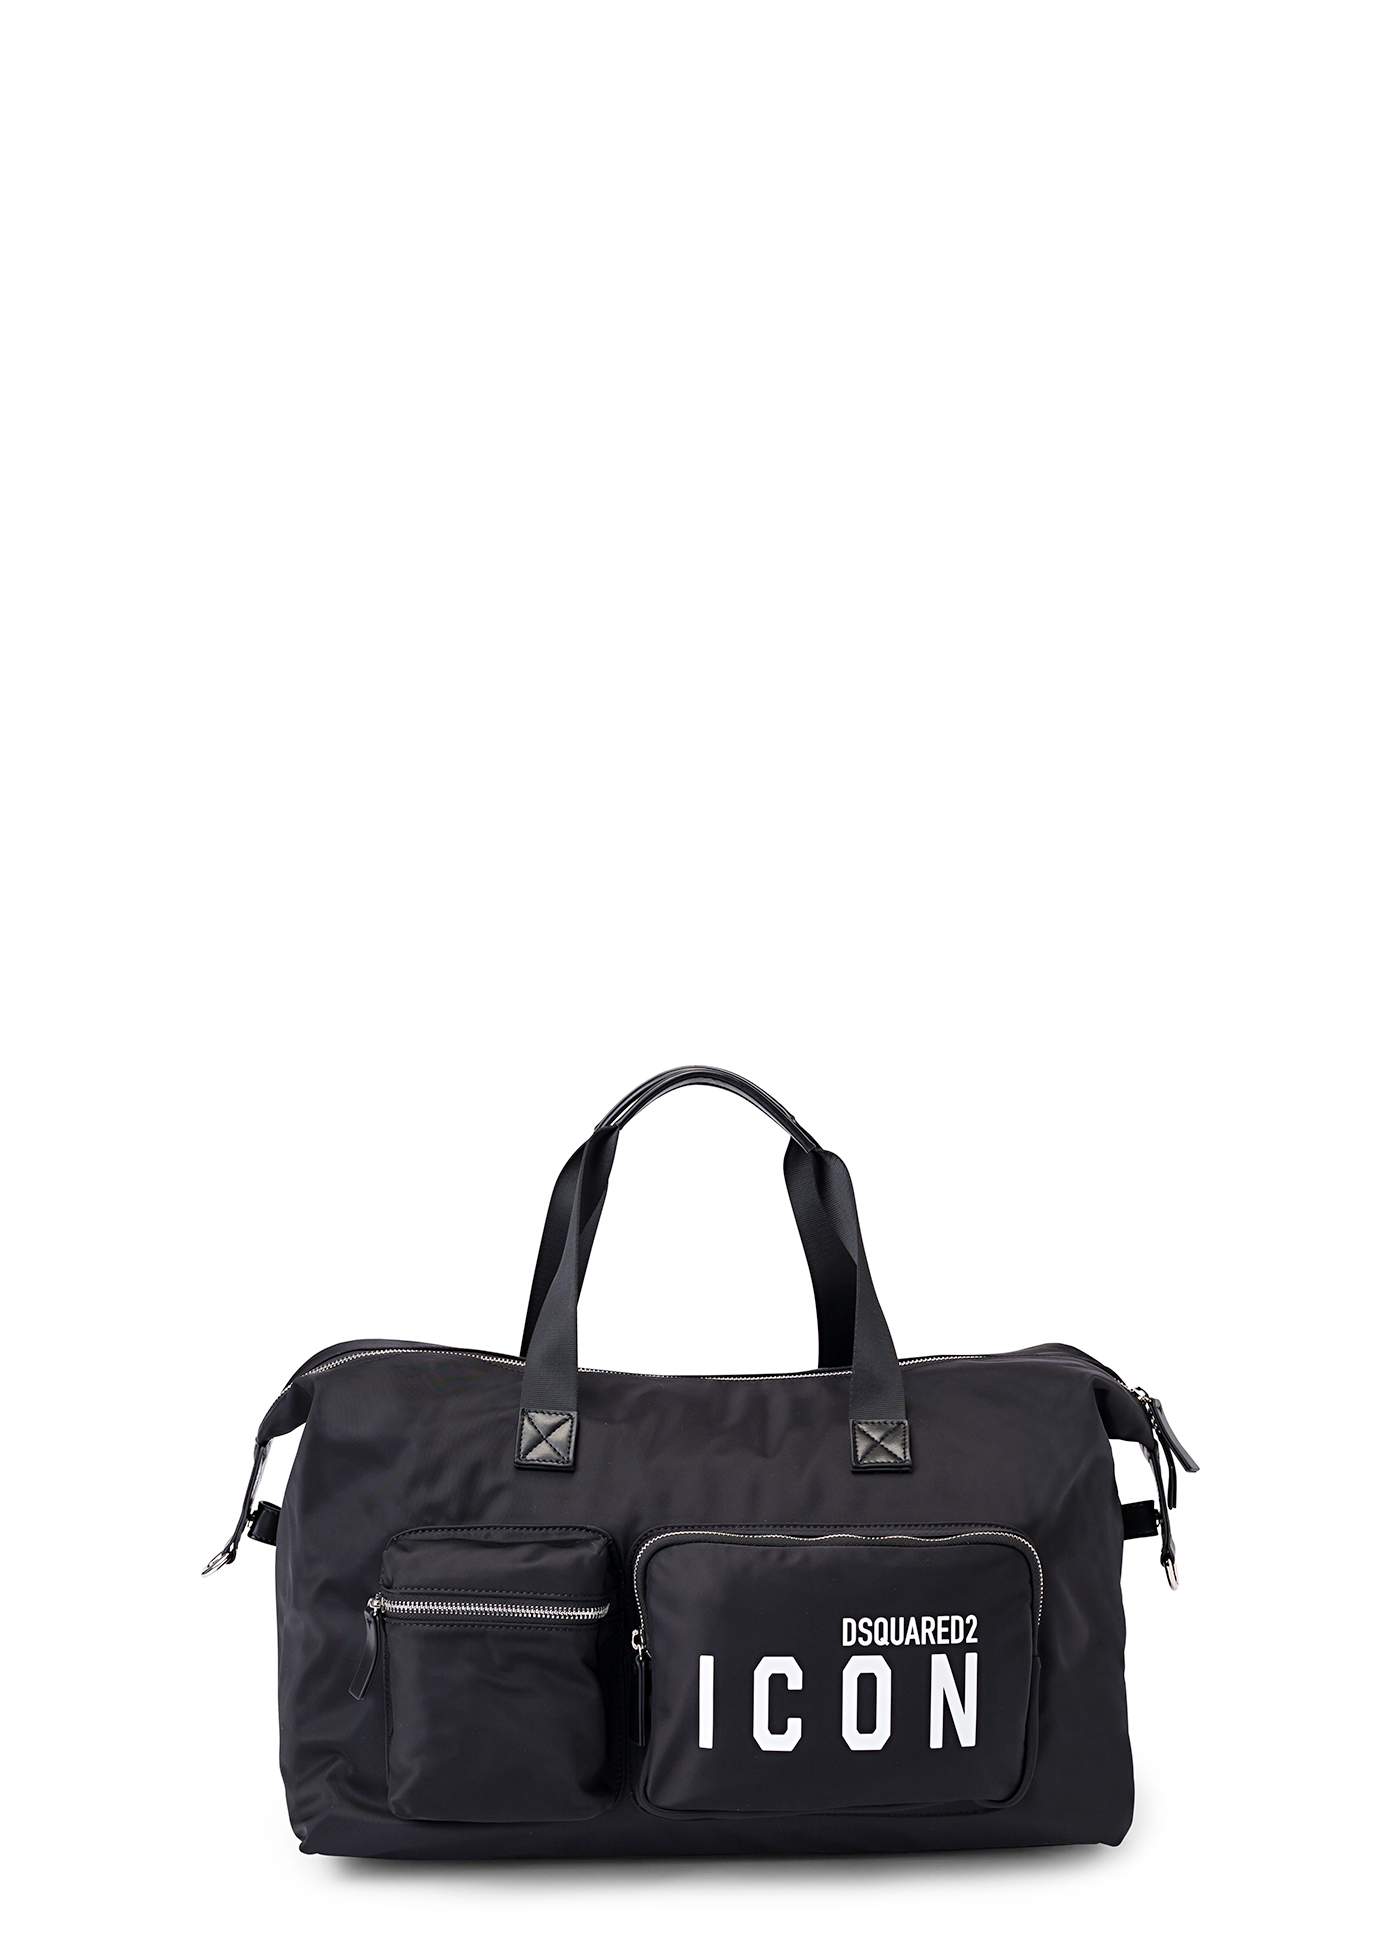 D2 ICON DUFFLE BAG image number 0